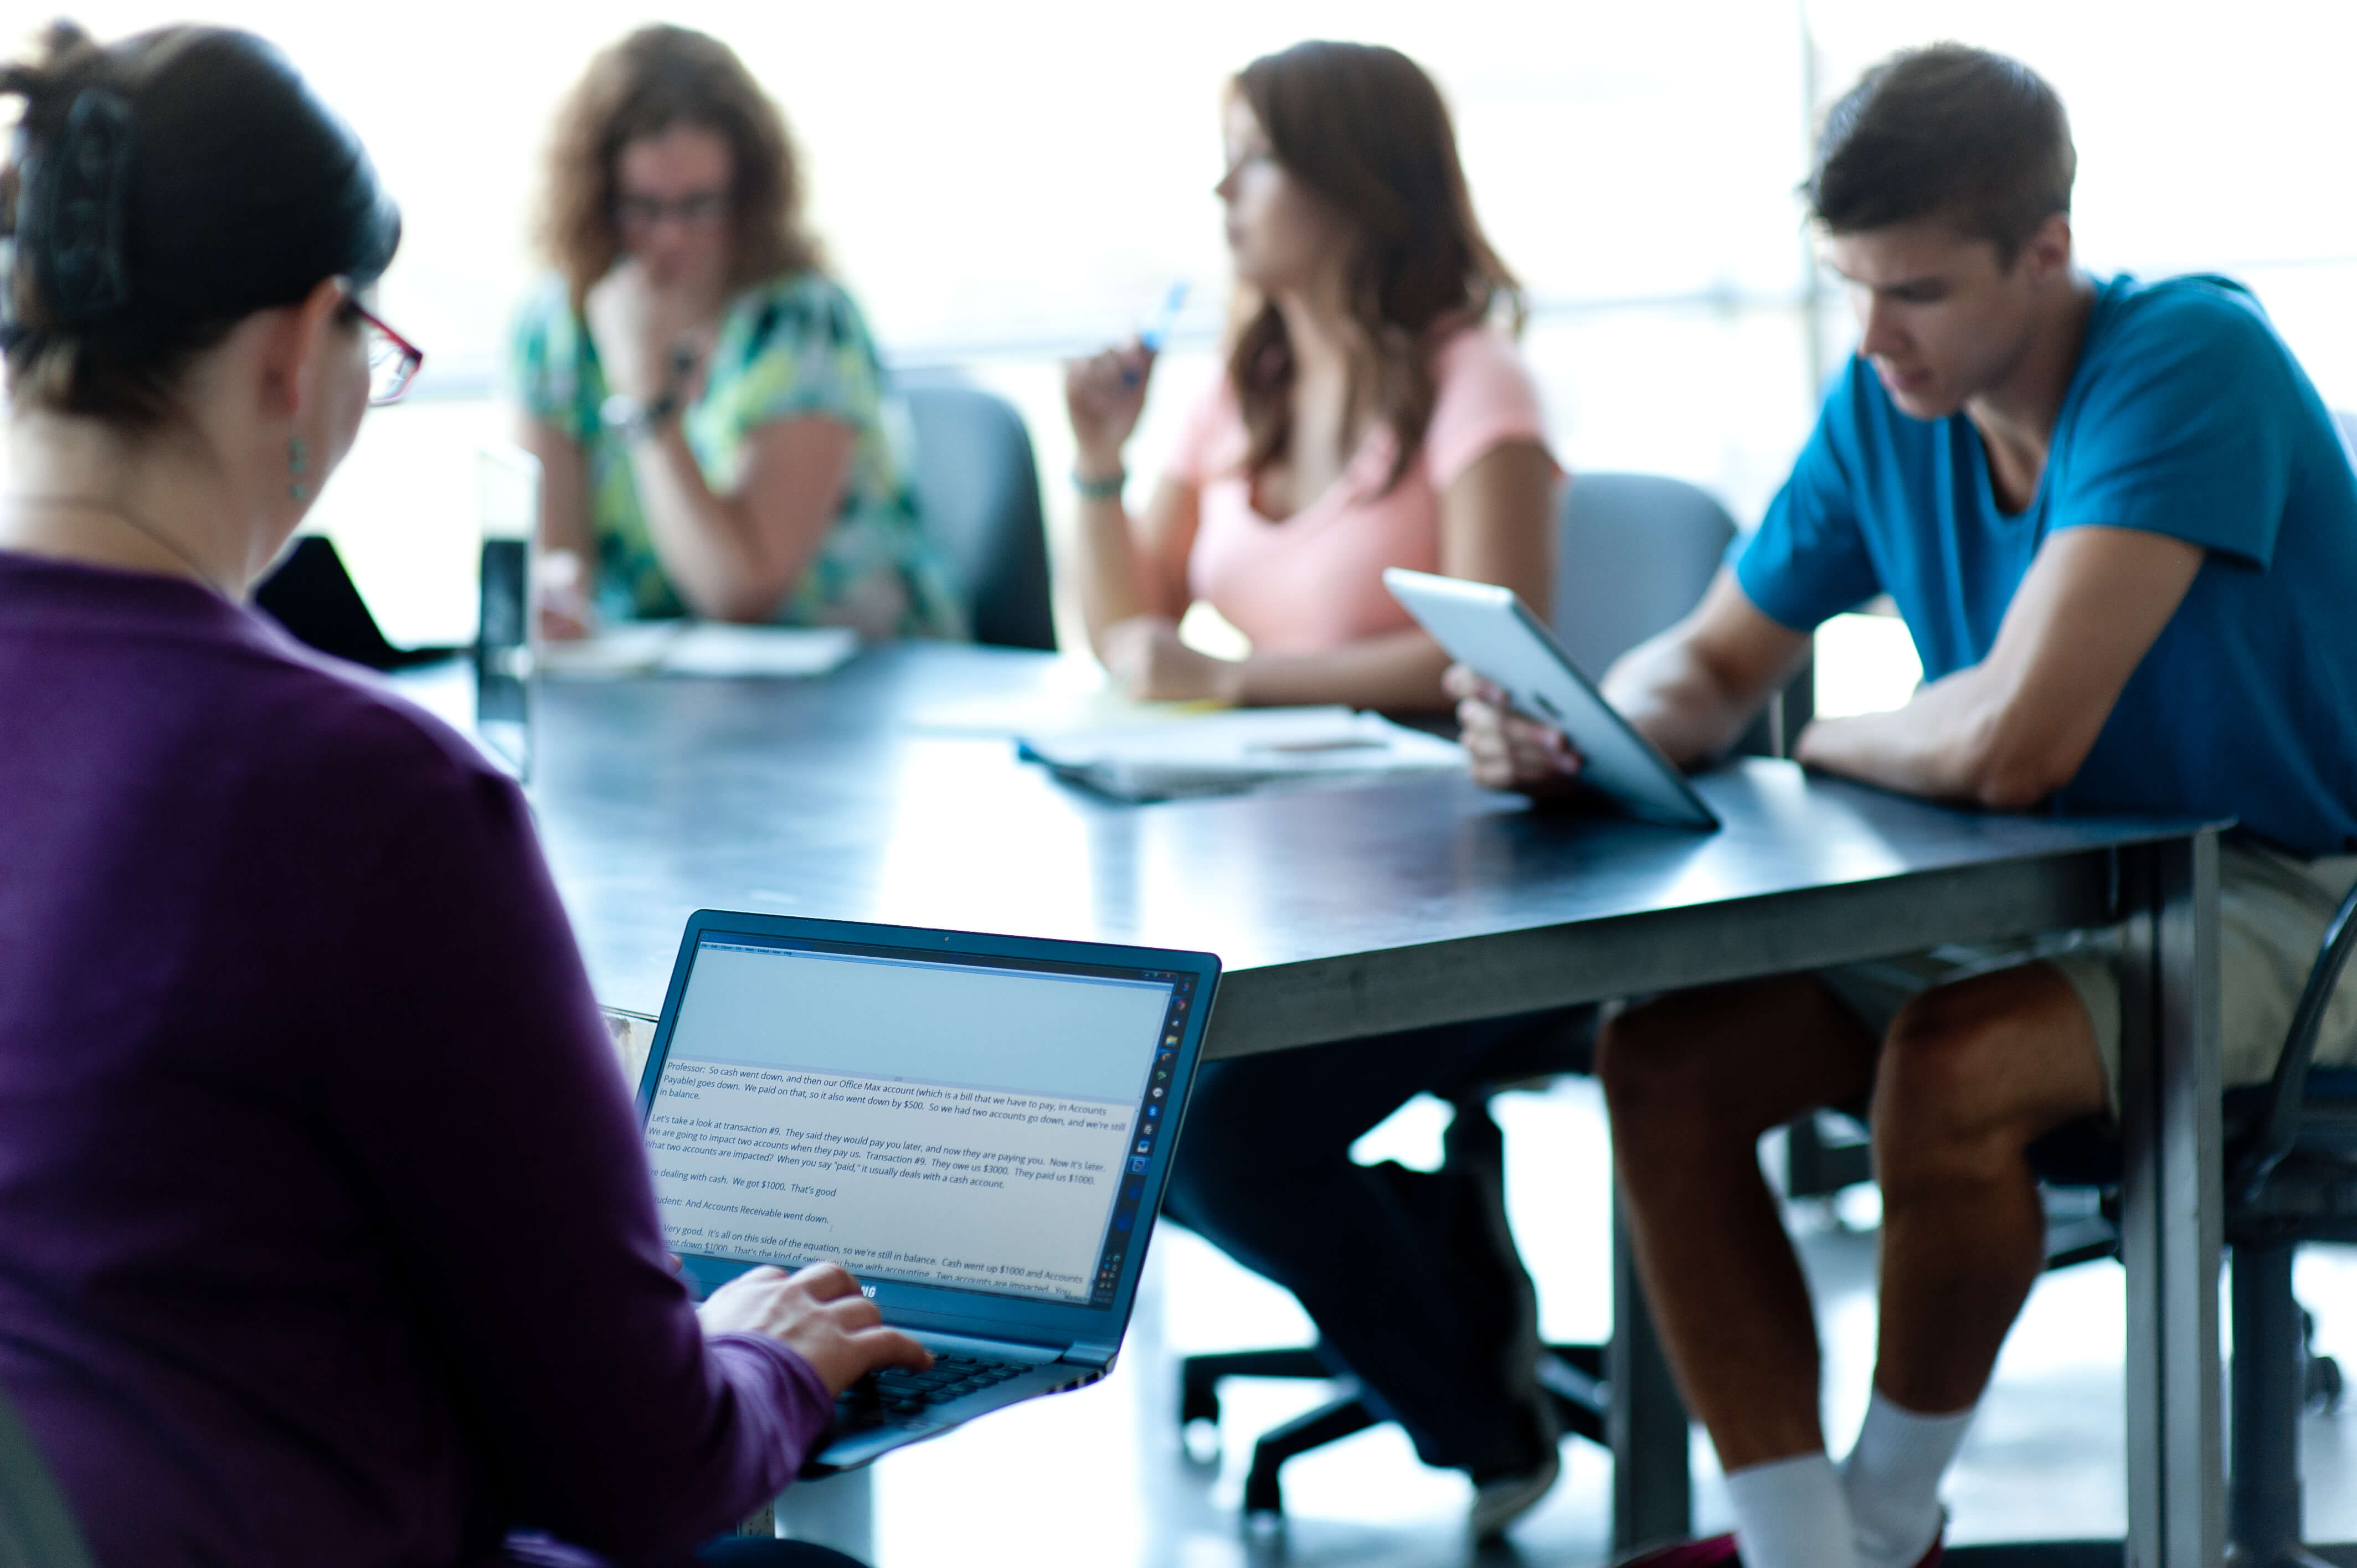 transcriber typing on a laptop while a group of students are talking, with one student reading text from an ipad